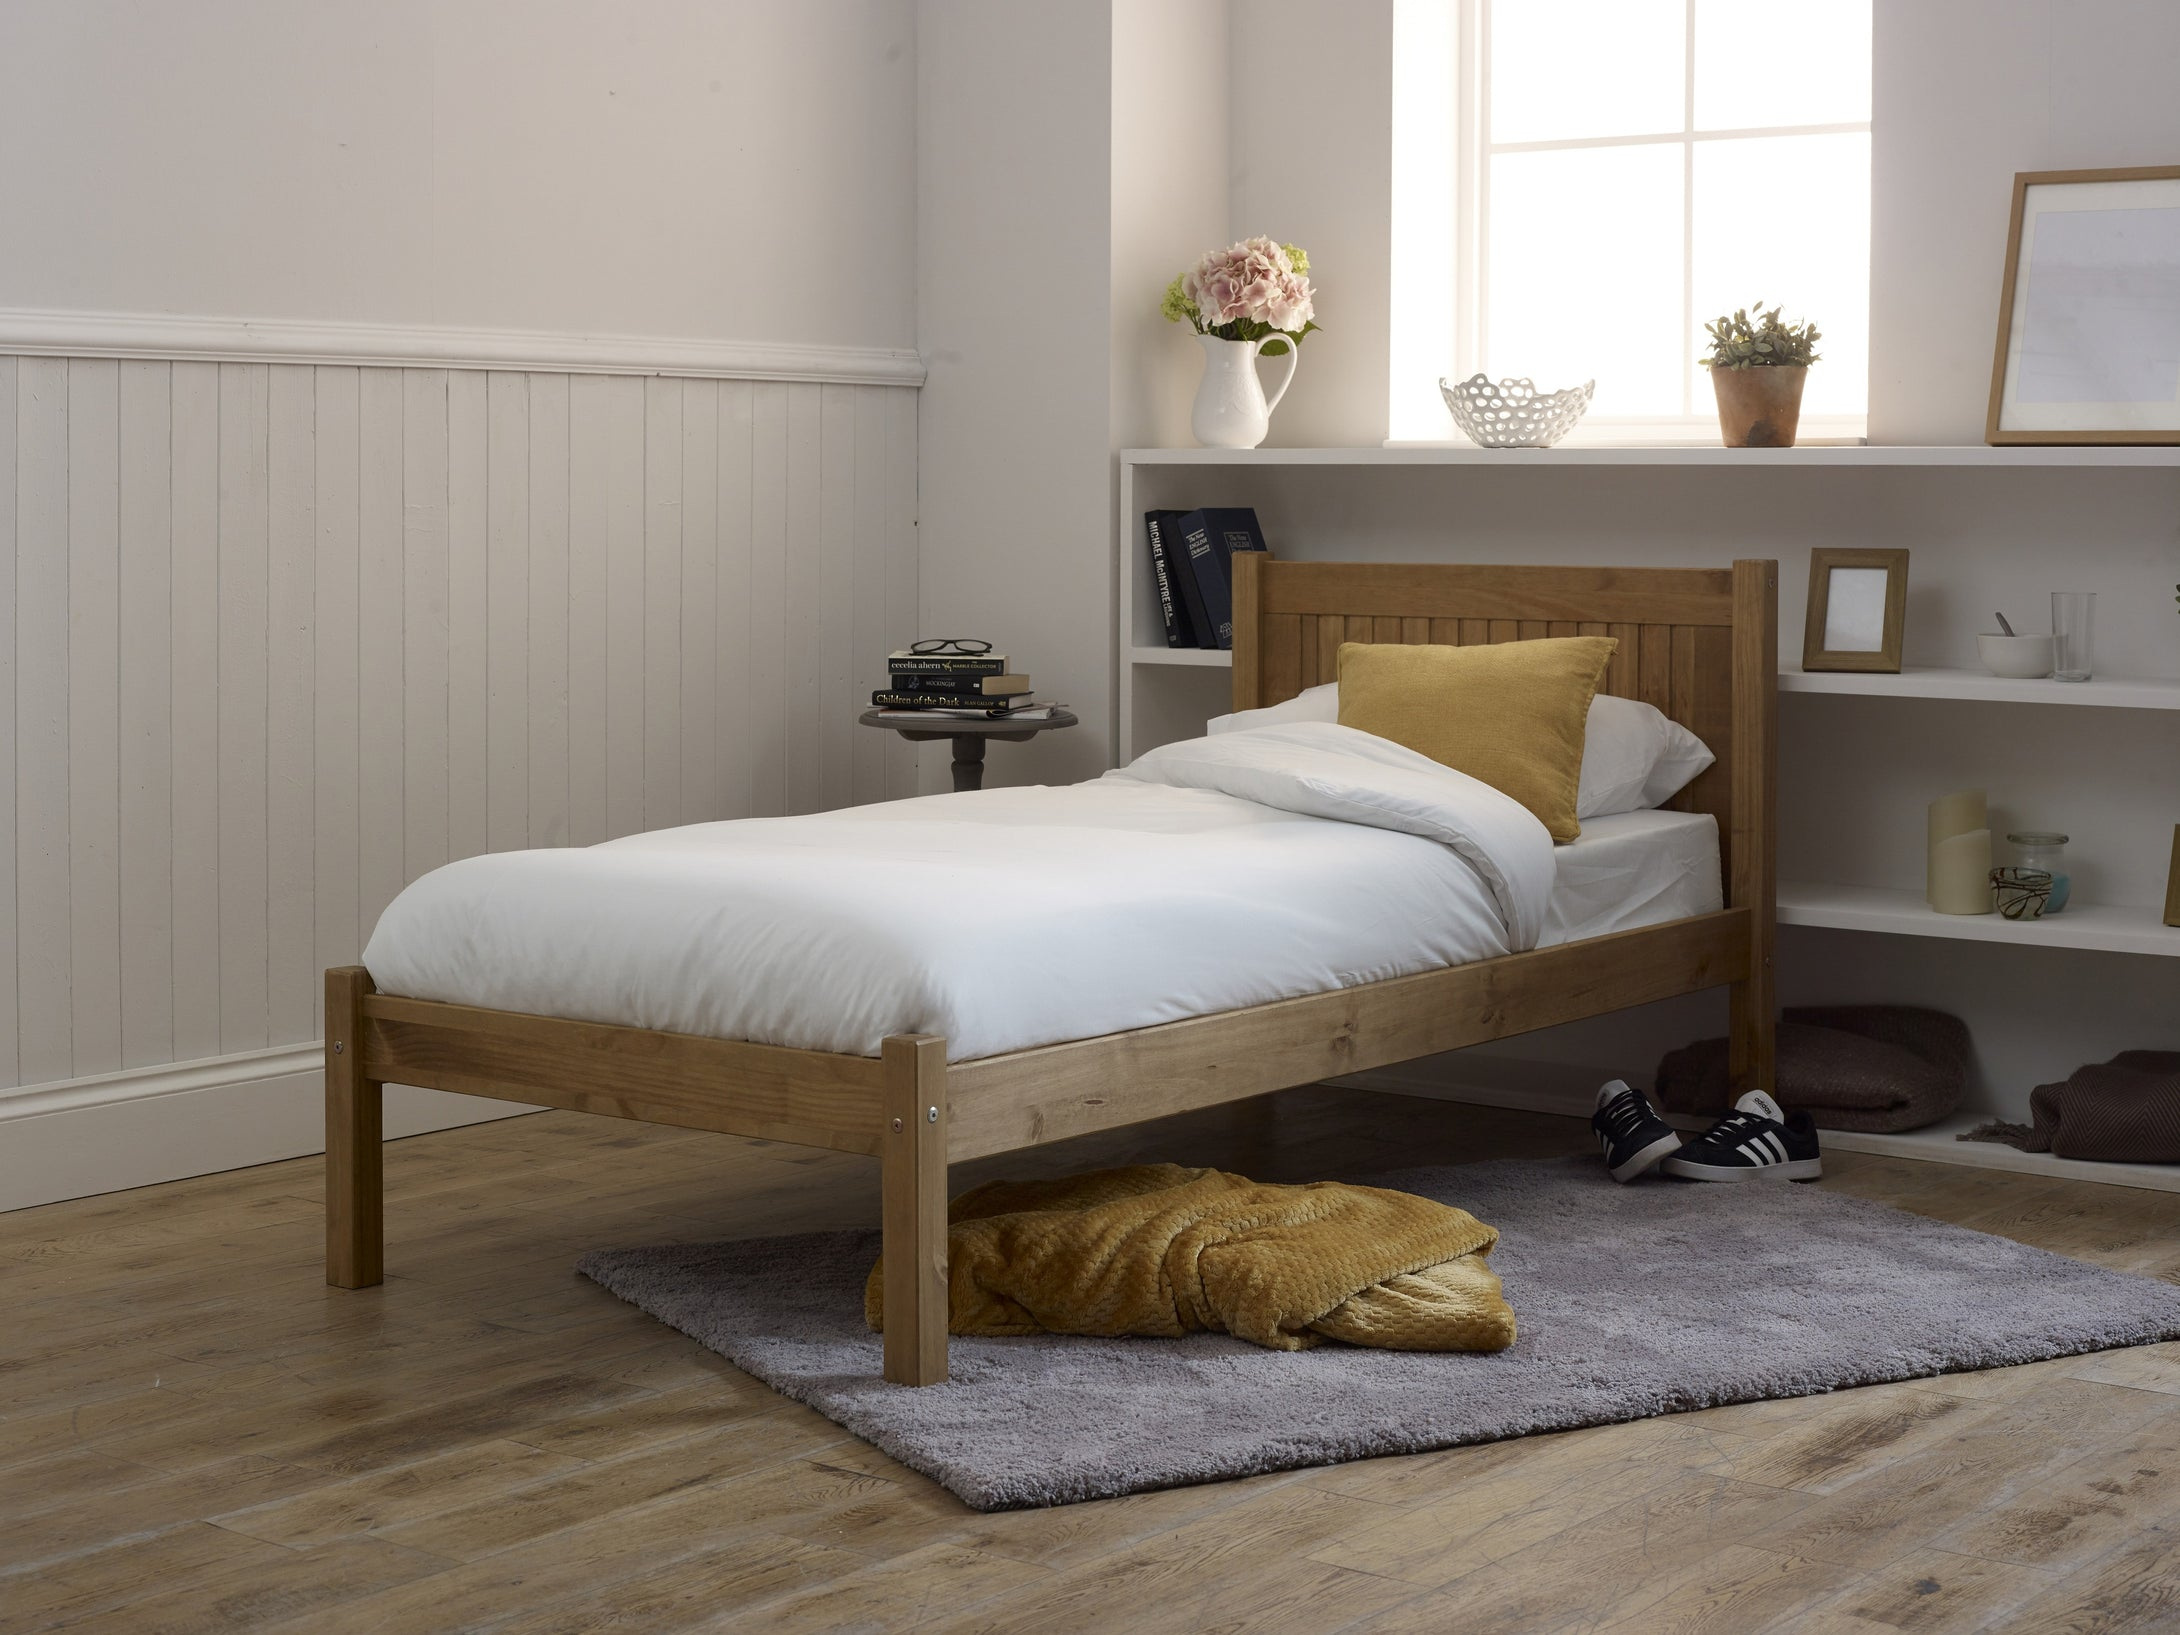 Double wooden bed | double pine bed frame - bedsmart